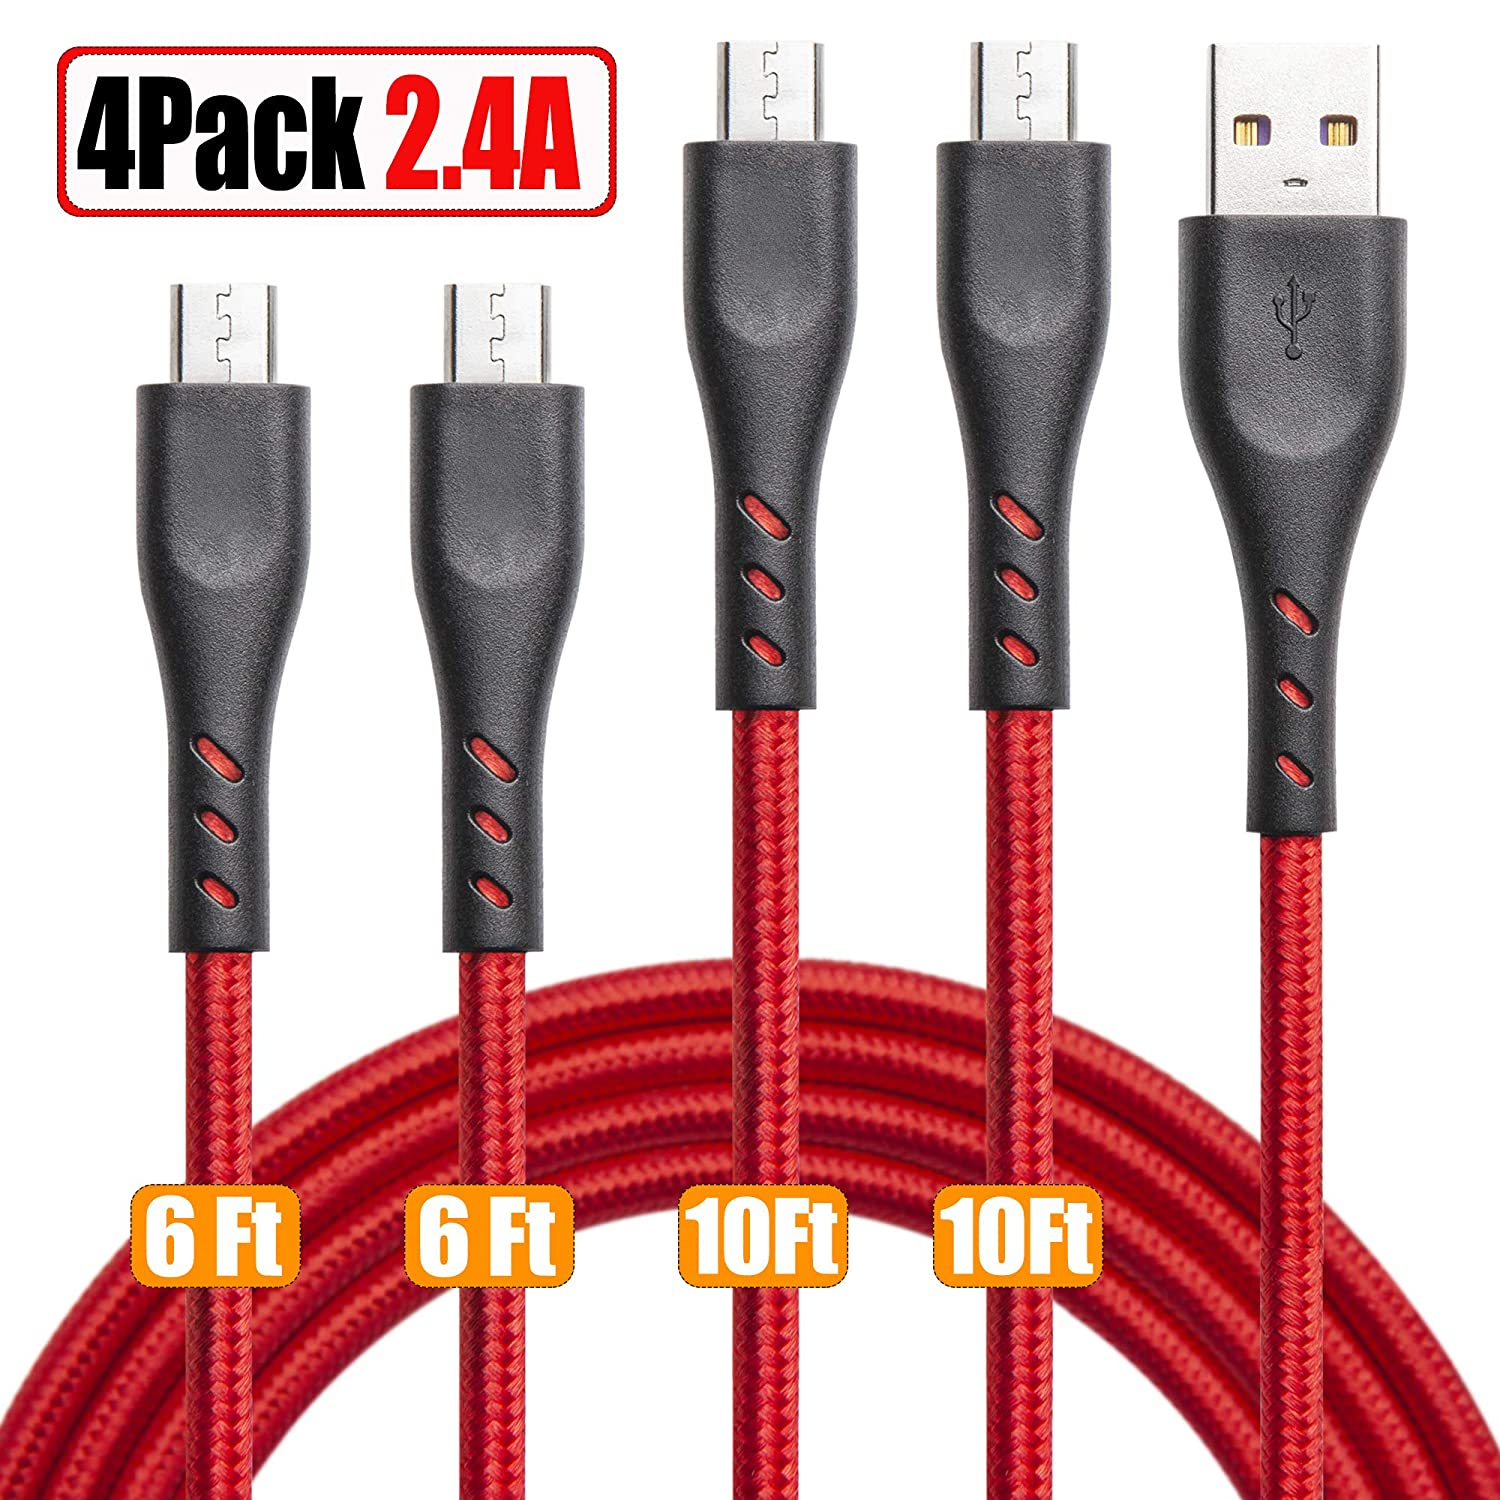 Micro USB Cable Braided 10ft 6ft, 4 Pack Android Charging Cable Fast Phone Charger Cord with Extra Long Length Nylon Braided for Samsung Galaxy S7 Edge/S7/S6,Note 5 4,LG G4,HTC,PS4,Camera,MP3, HTC